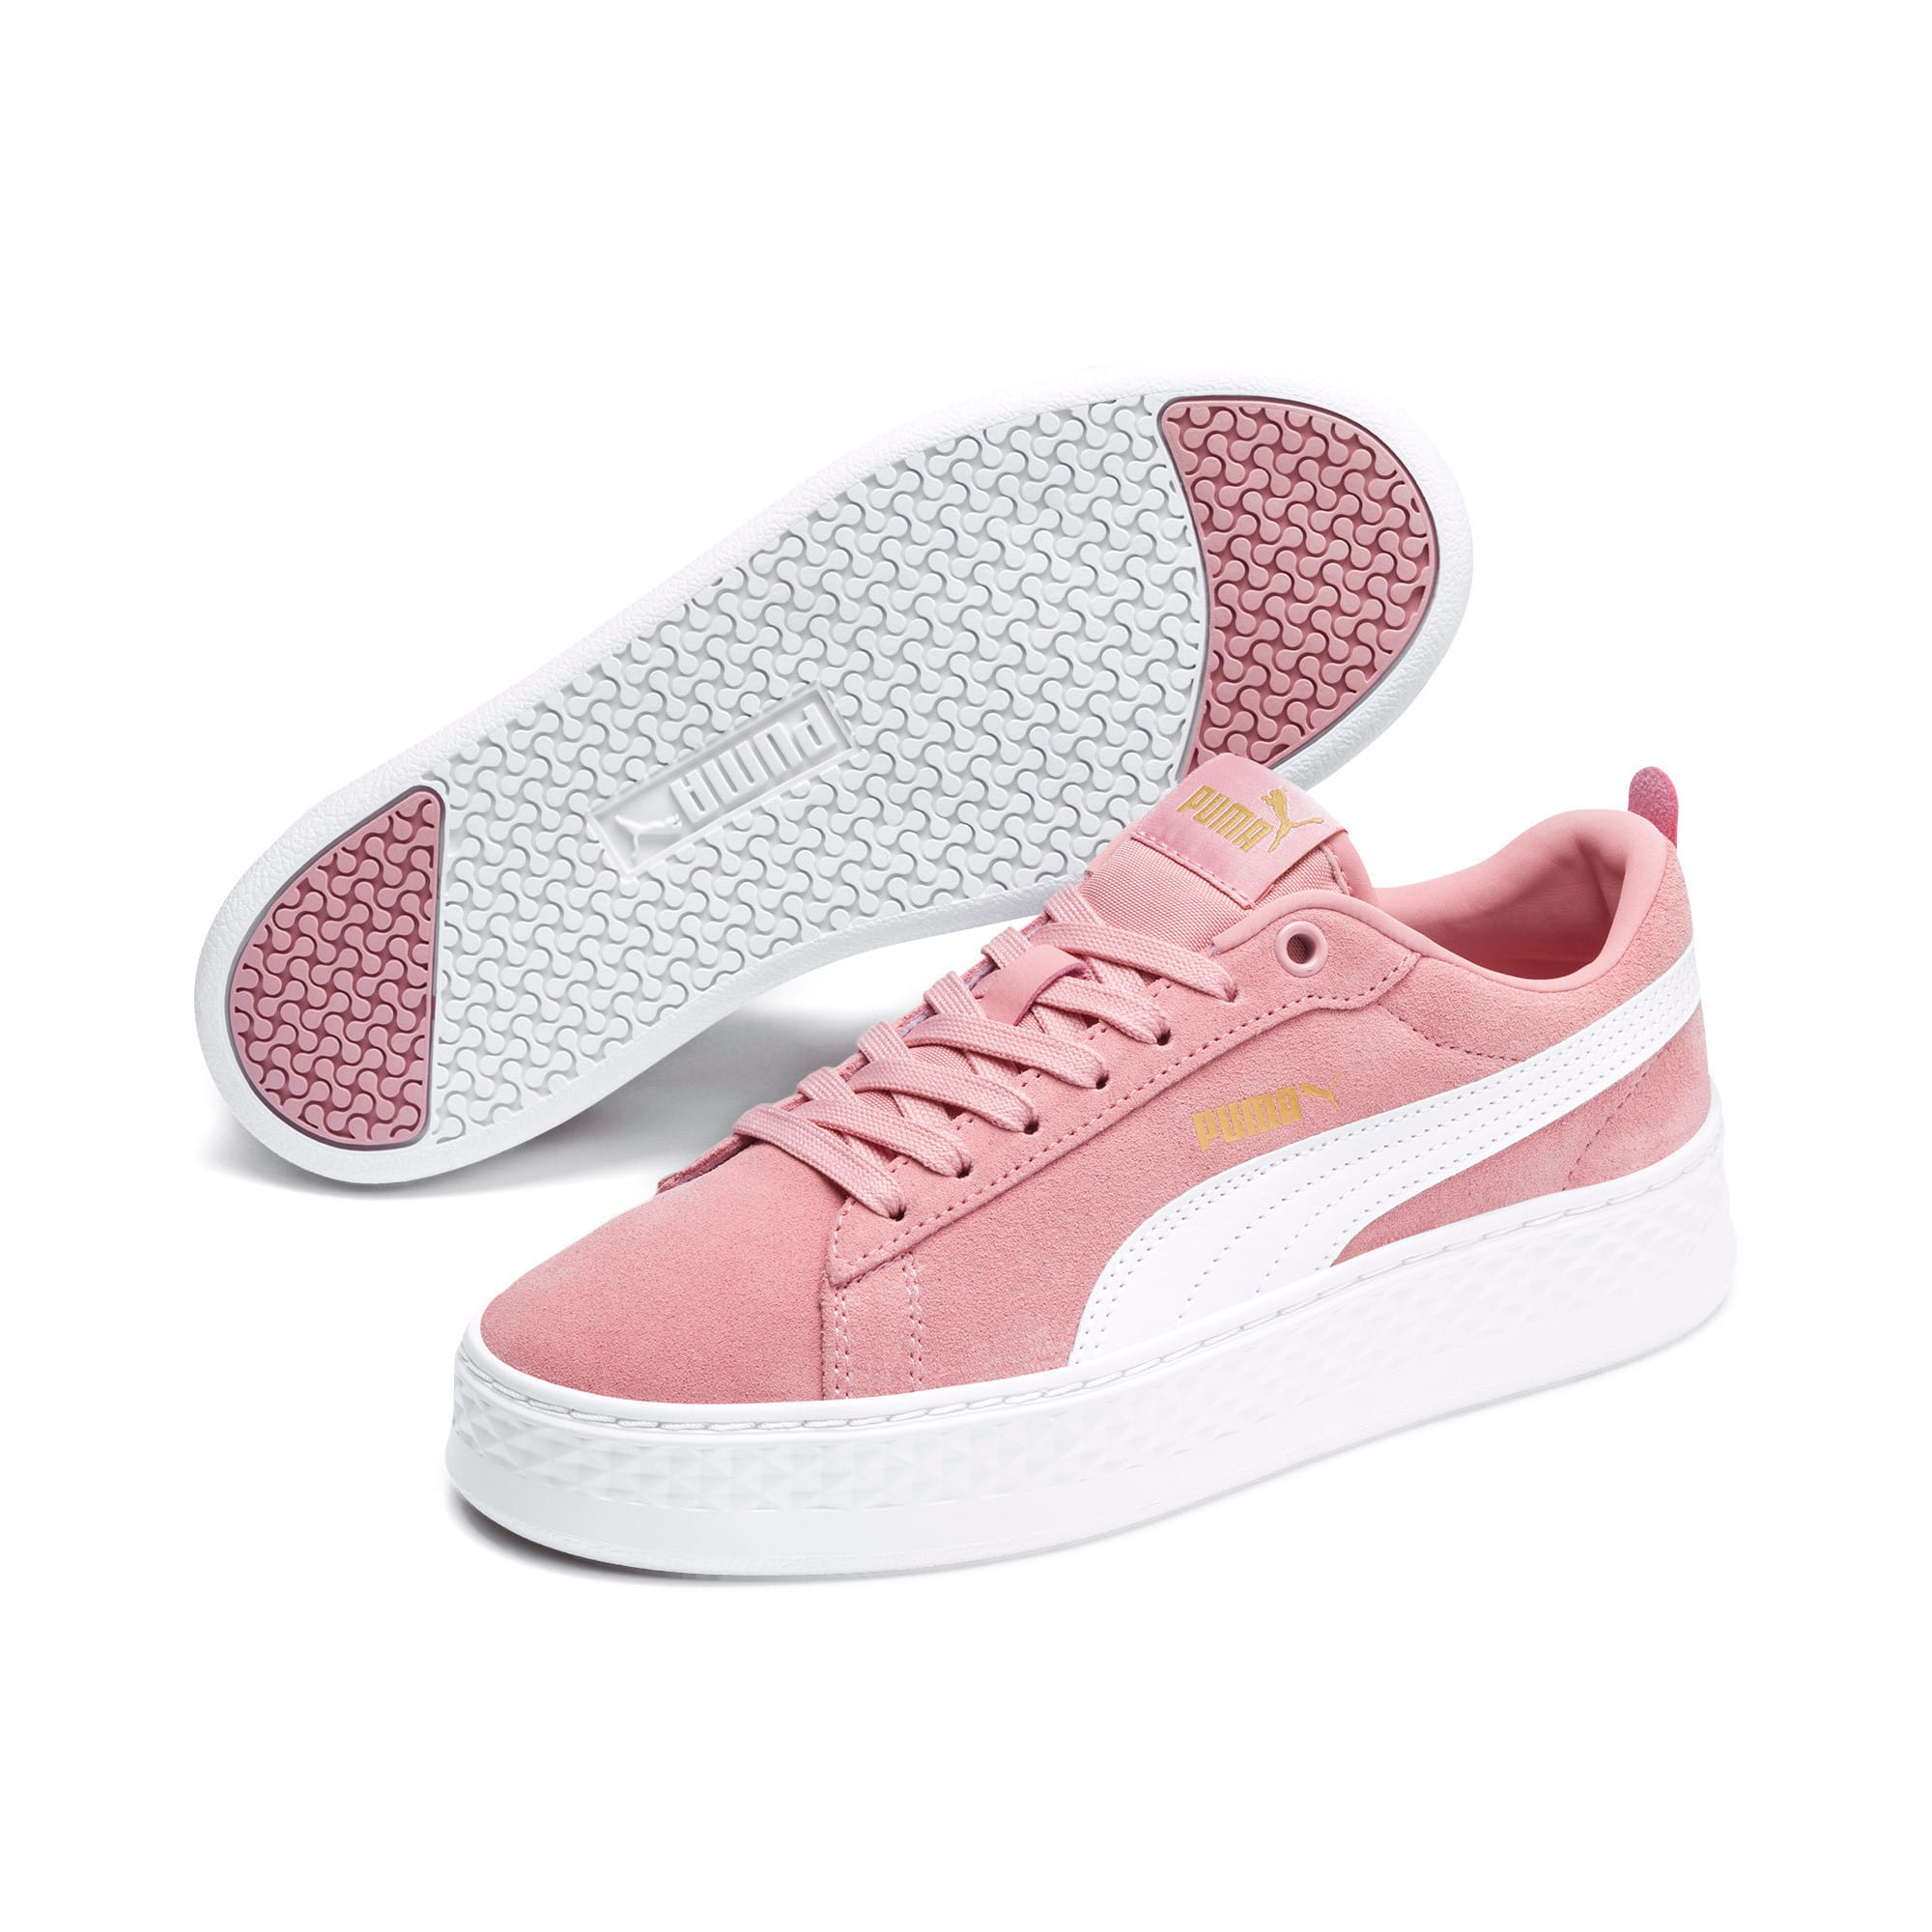 Smash Platform Suede Women's Trainers, Bridal Rose-Puma White-Gold, large